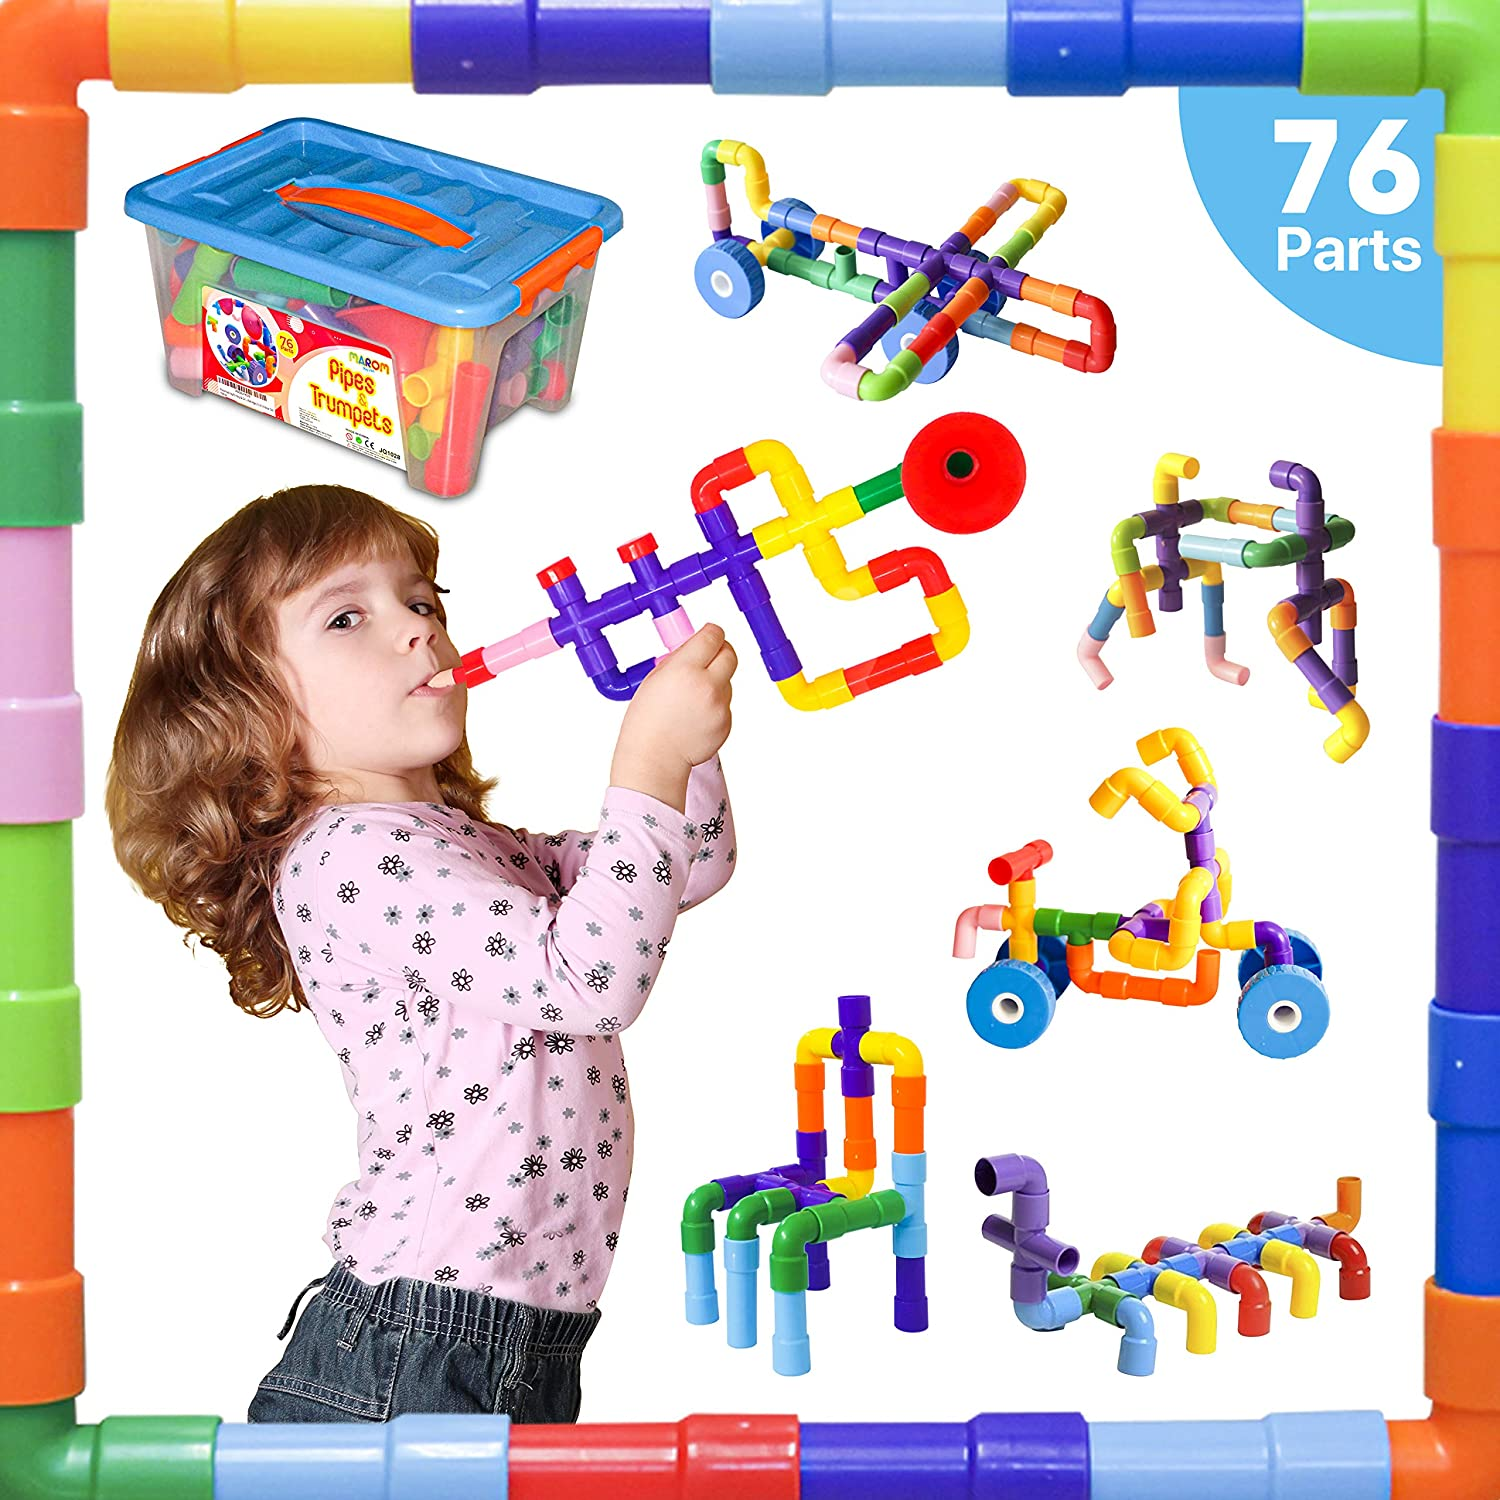 Pipe Building Blocks Toys for Kids Age 2 3 4-5 Year Old Boys Girls Toddlers Toys Age 2-4 Years Educational Stem Kids Learning Toys Preschool Building Blocks for Kids Ages 3-5 Engineering kids toy Gift